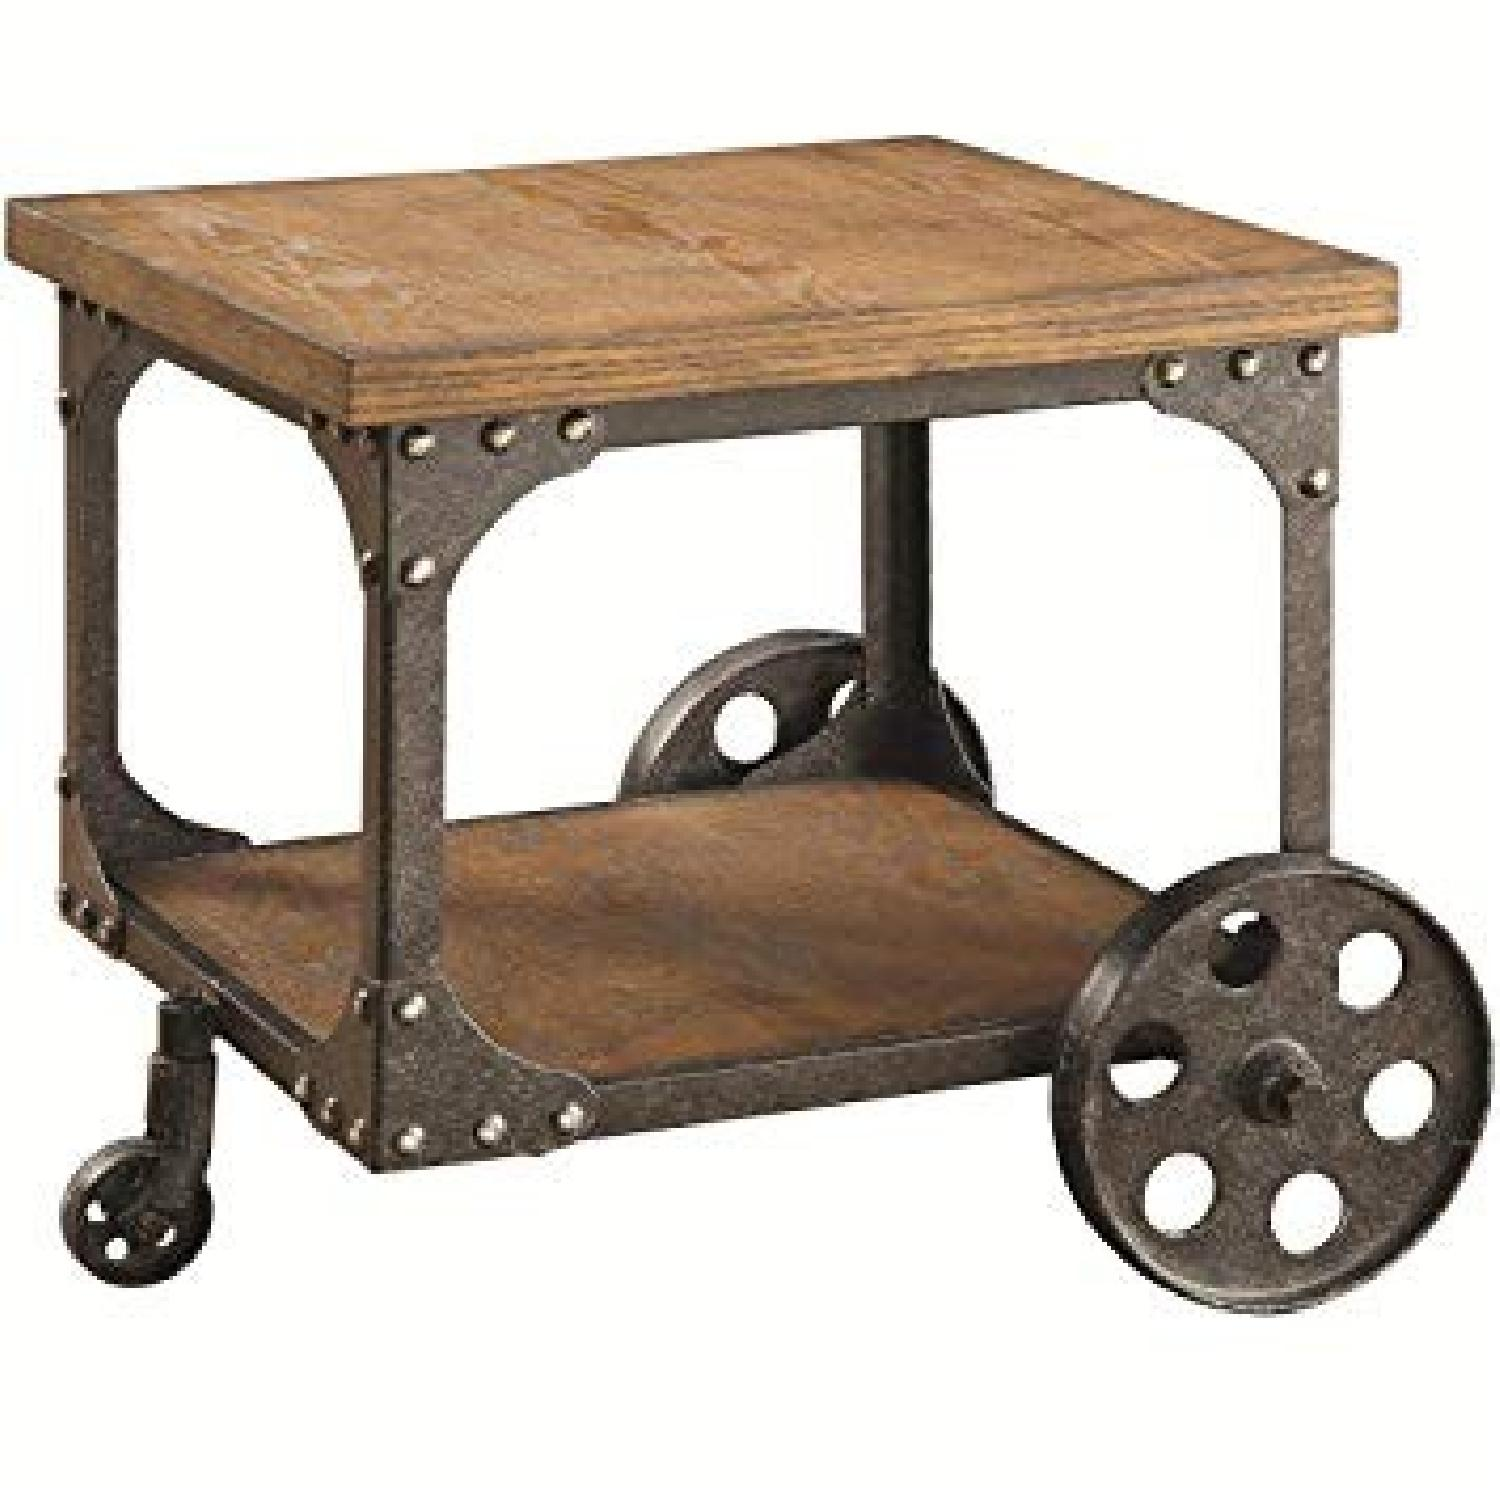 Rustic Brown End Table w/ Metal Wheels - image-0